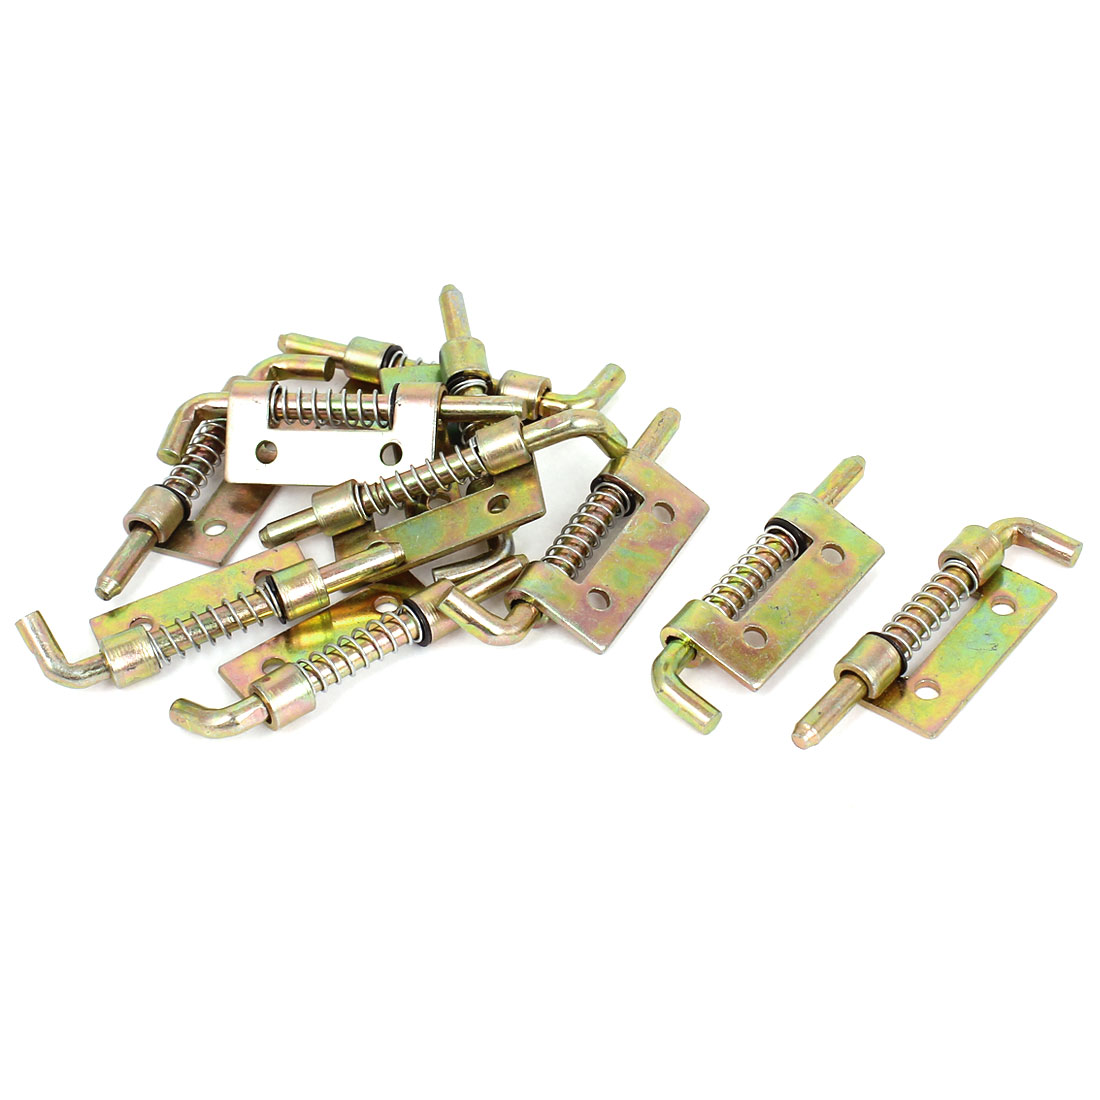 10pcs Cabinet Door Hinges Spring Loaded Metal Left Barrel Bolt Latch 54mm Long